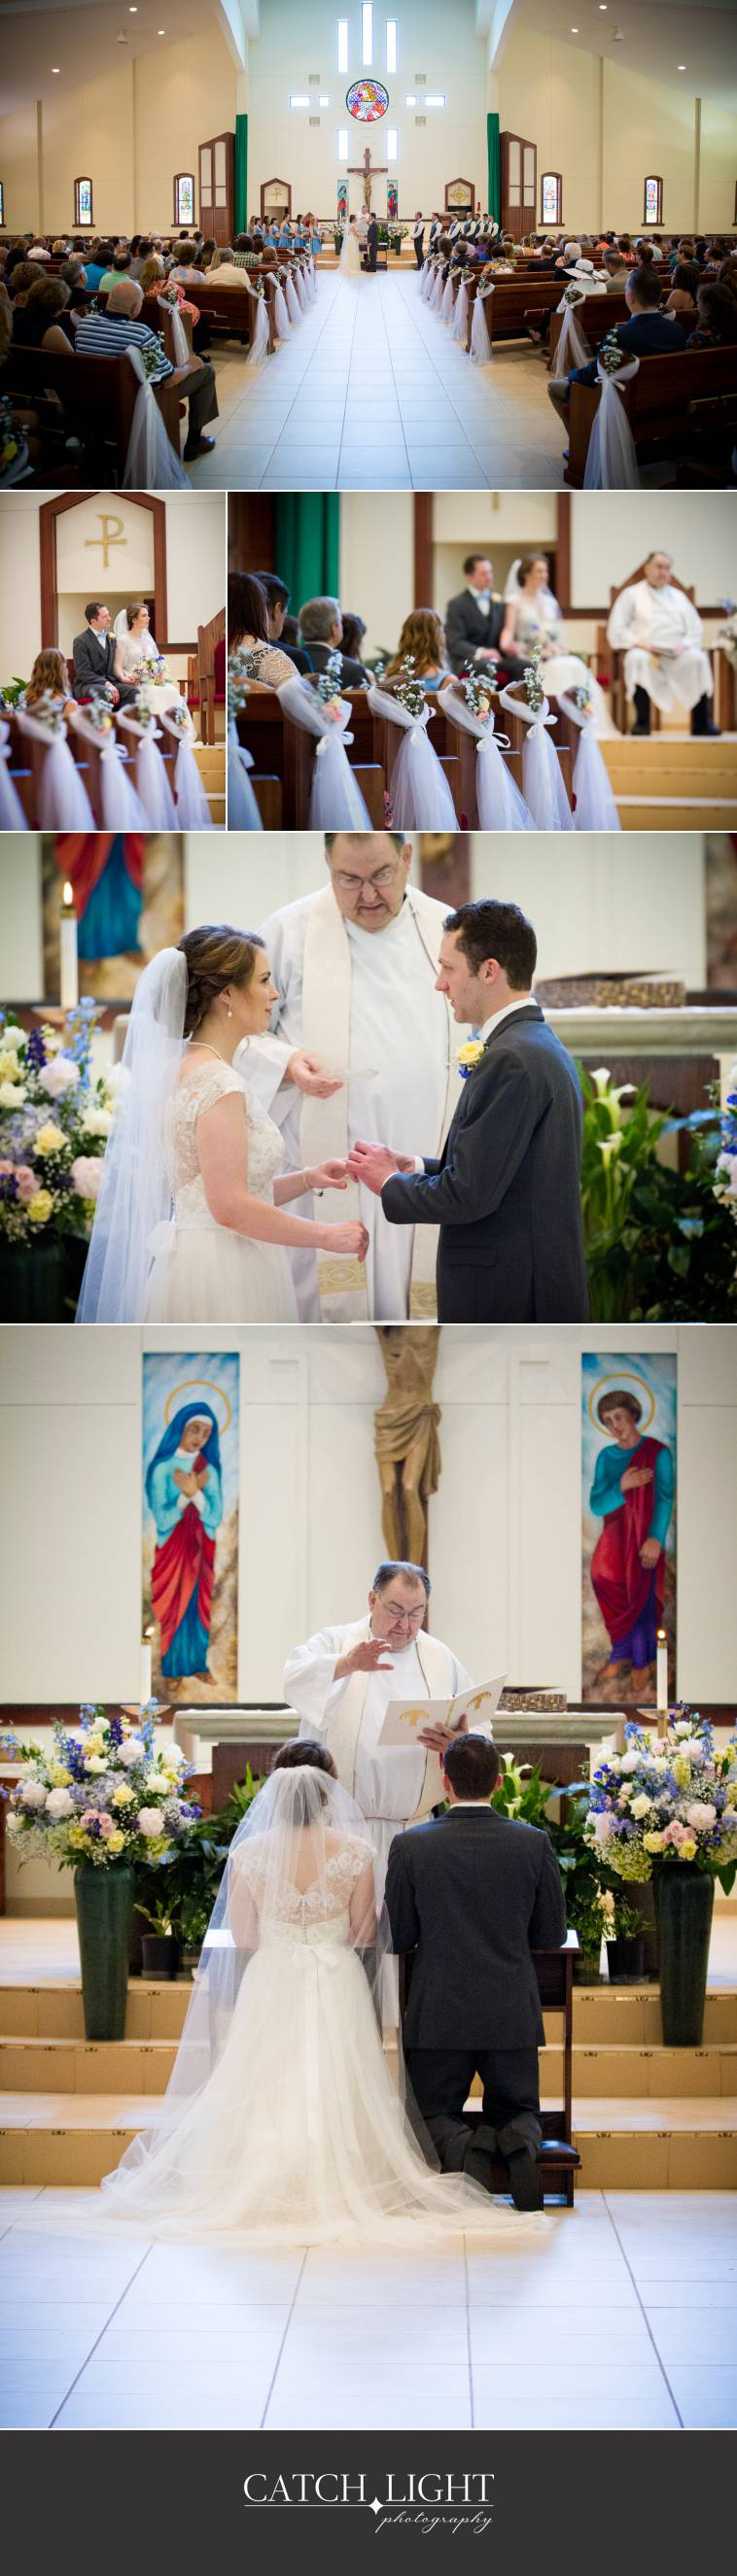 wedding photography of Catholic ceremony